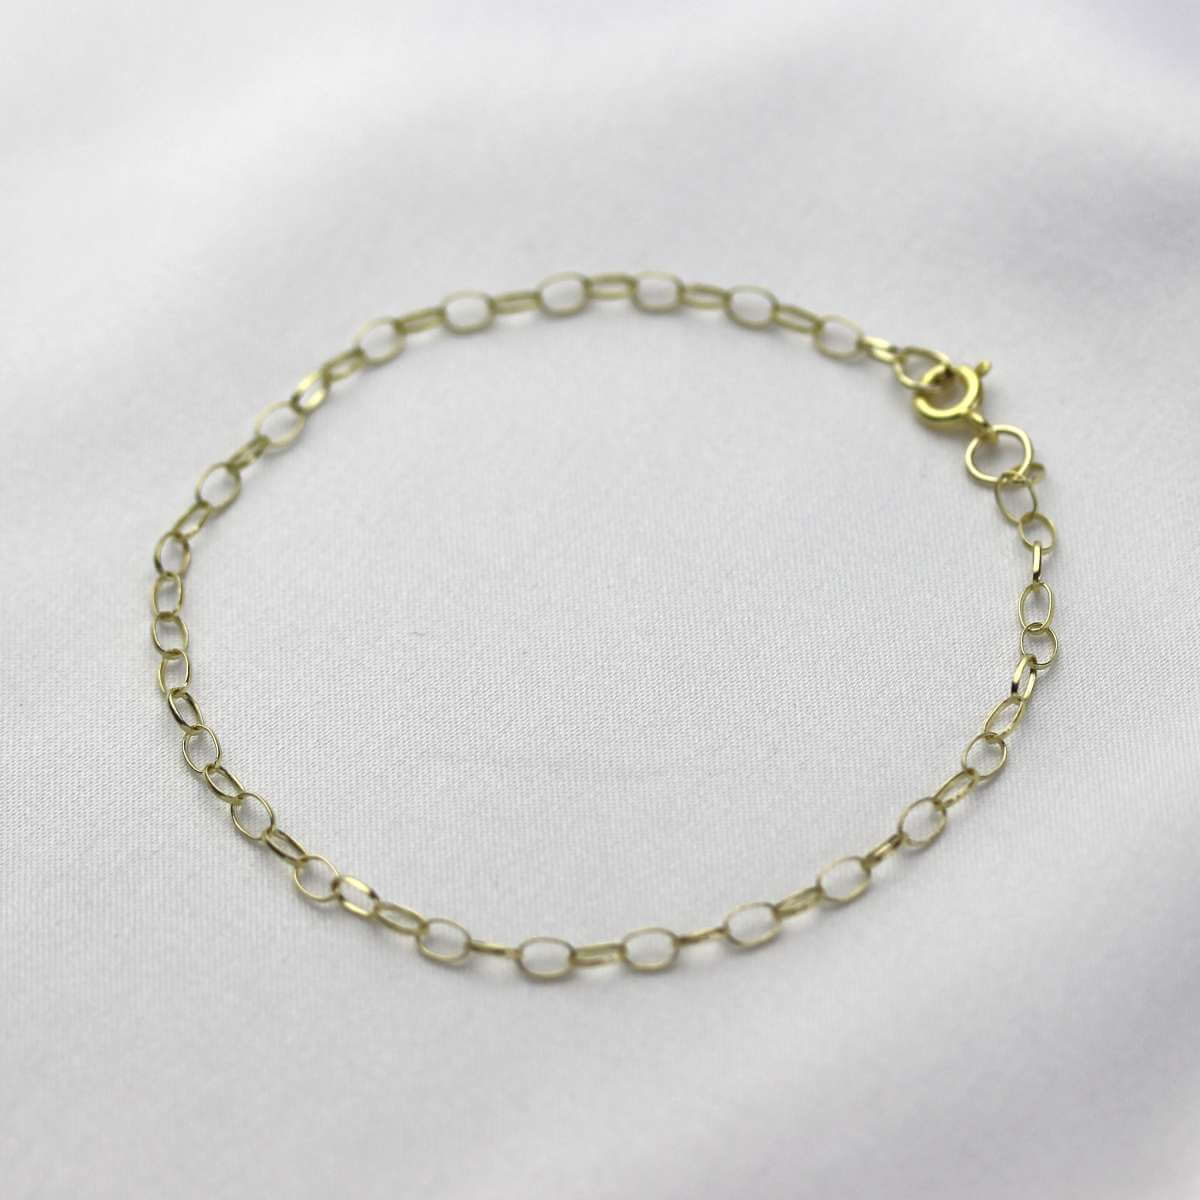 9ct Gold 2.65mm Oval Belcher Charm Bracelet 7.5 Inches